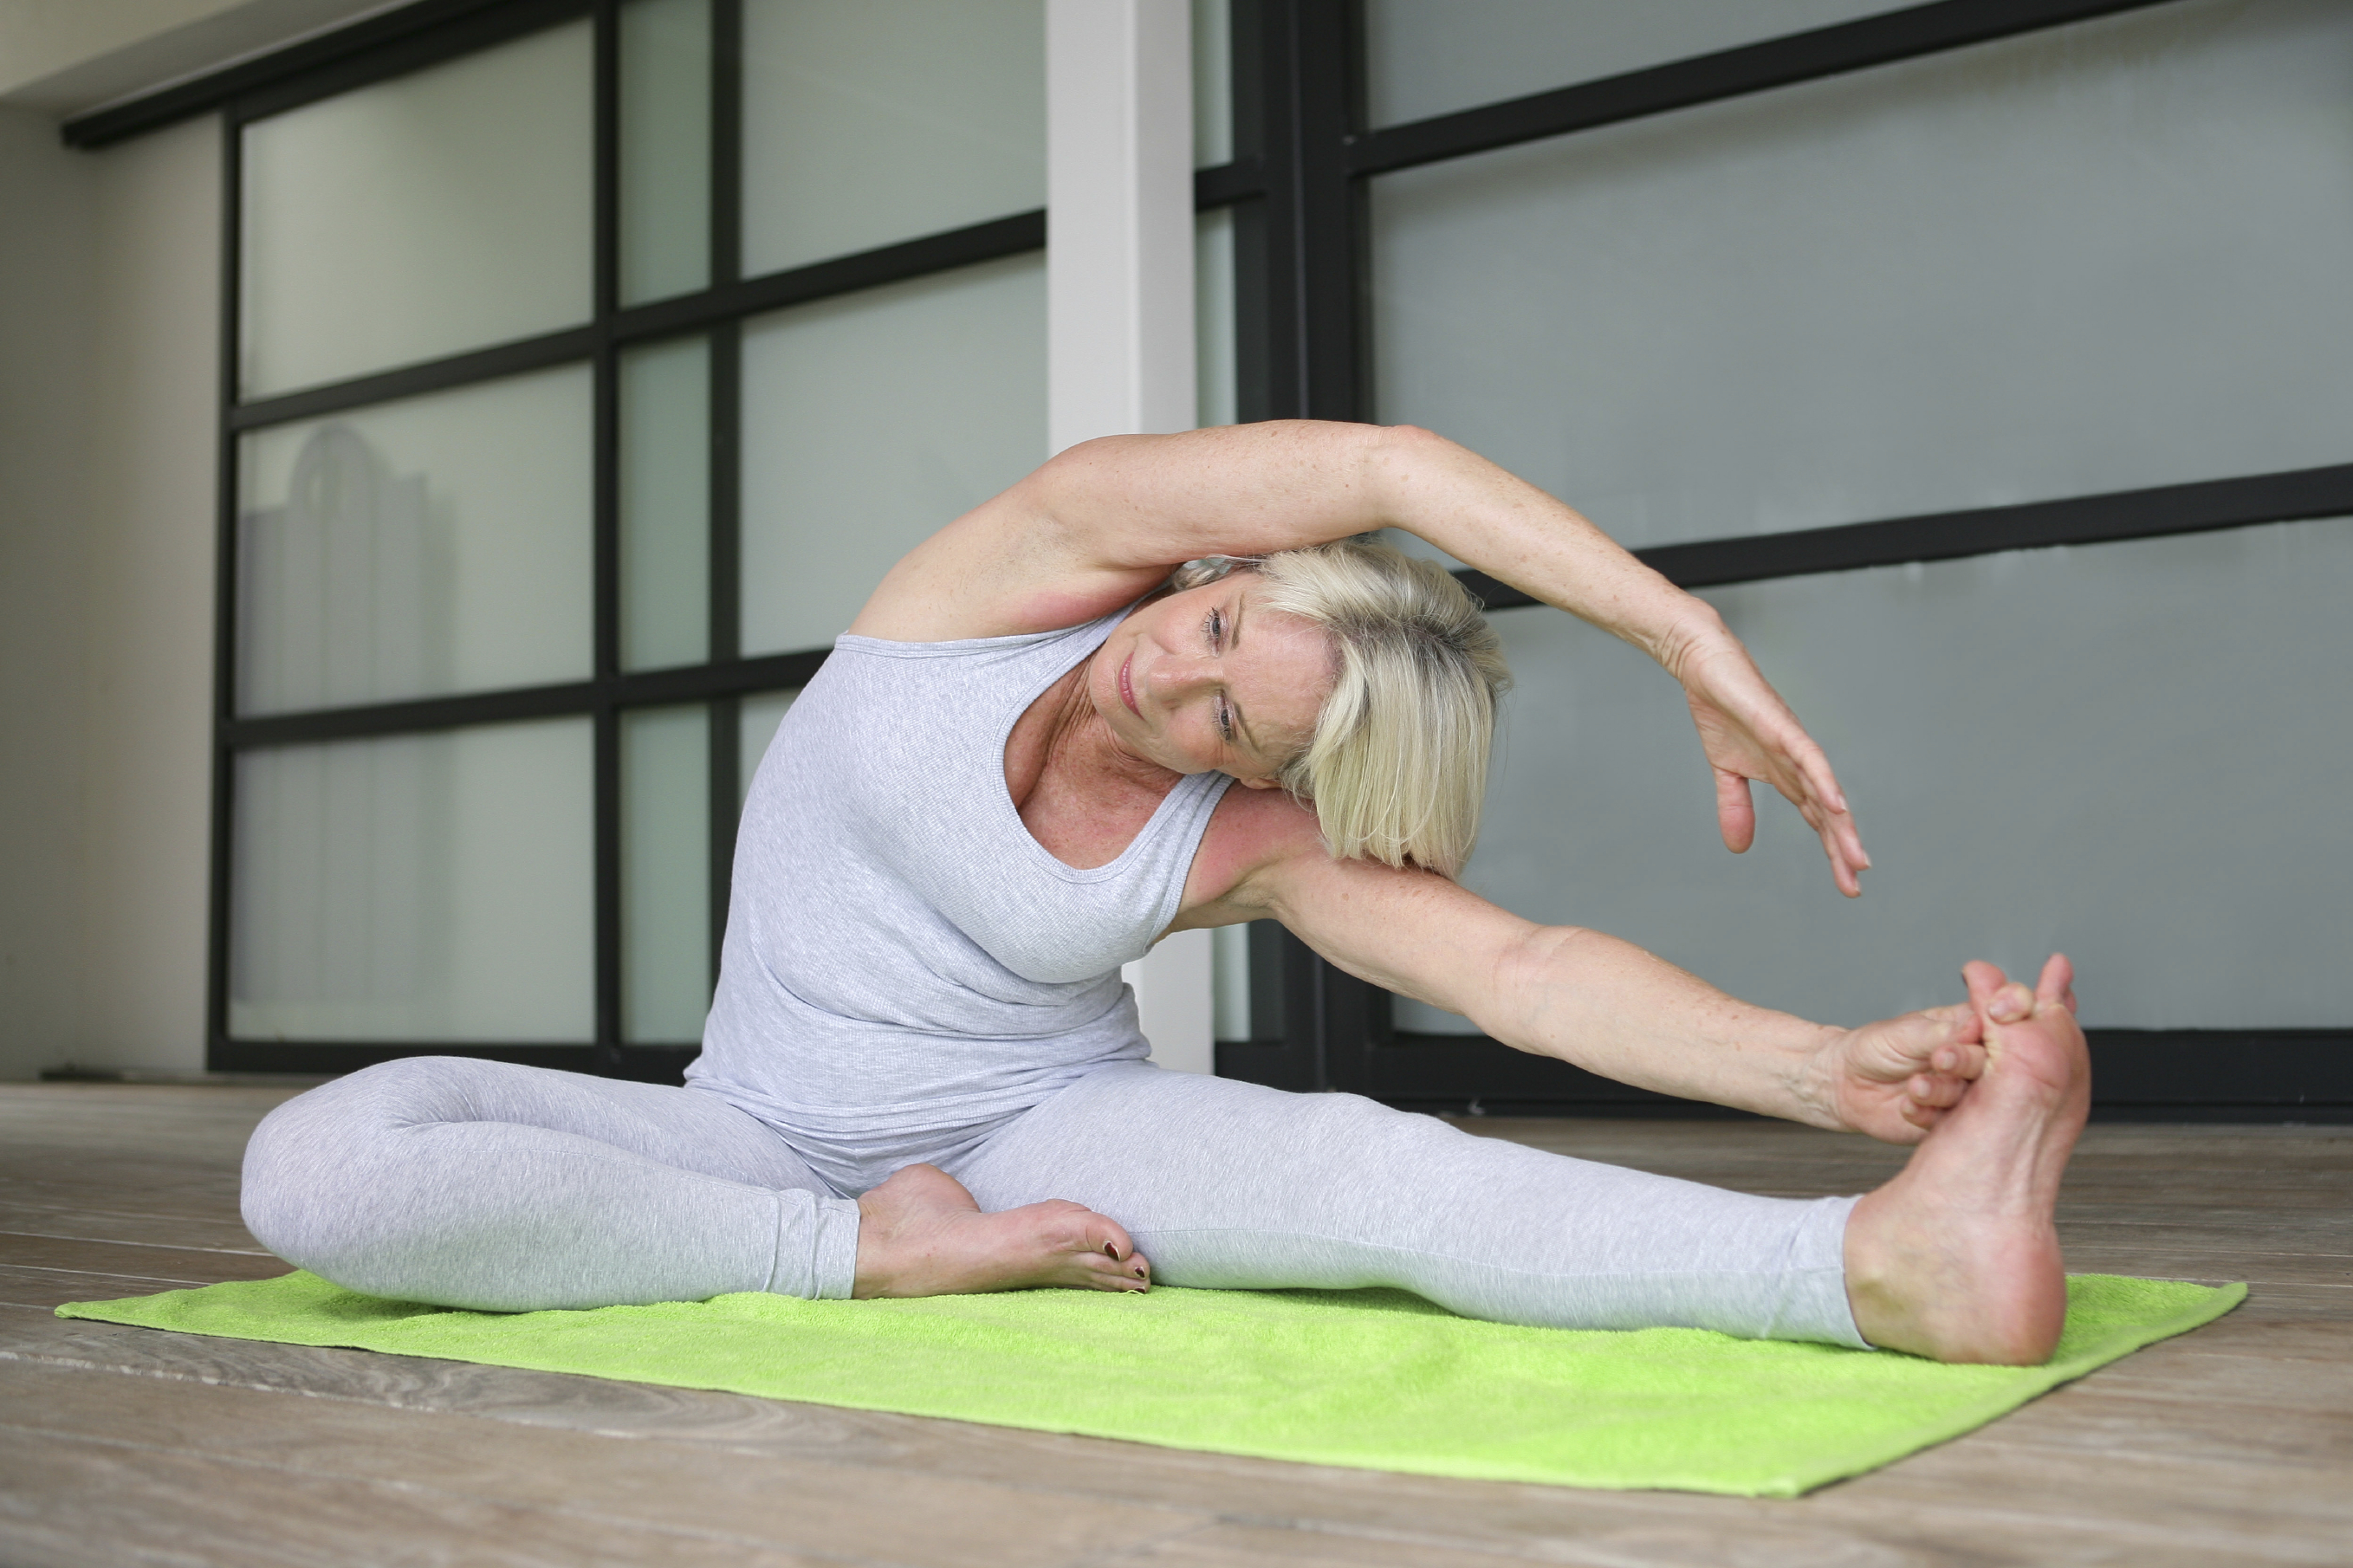 Exercises and Stretching